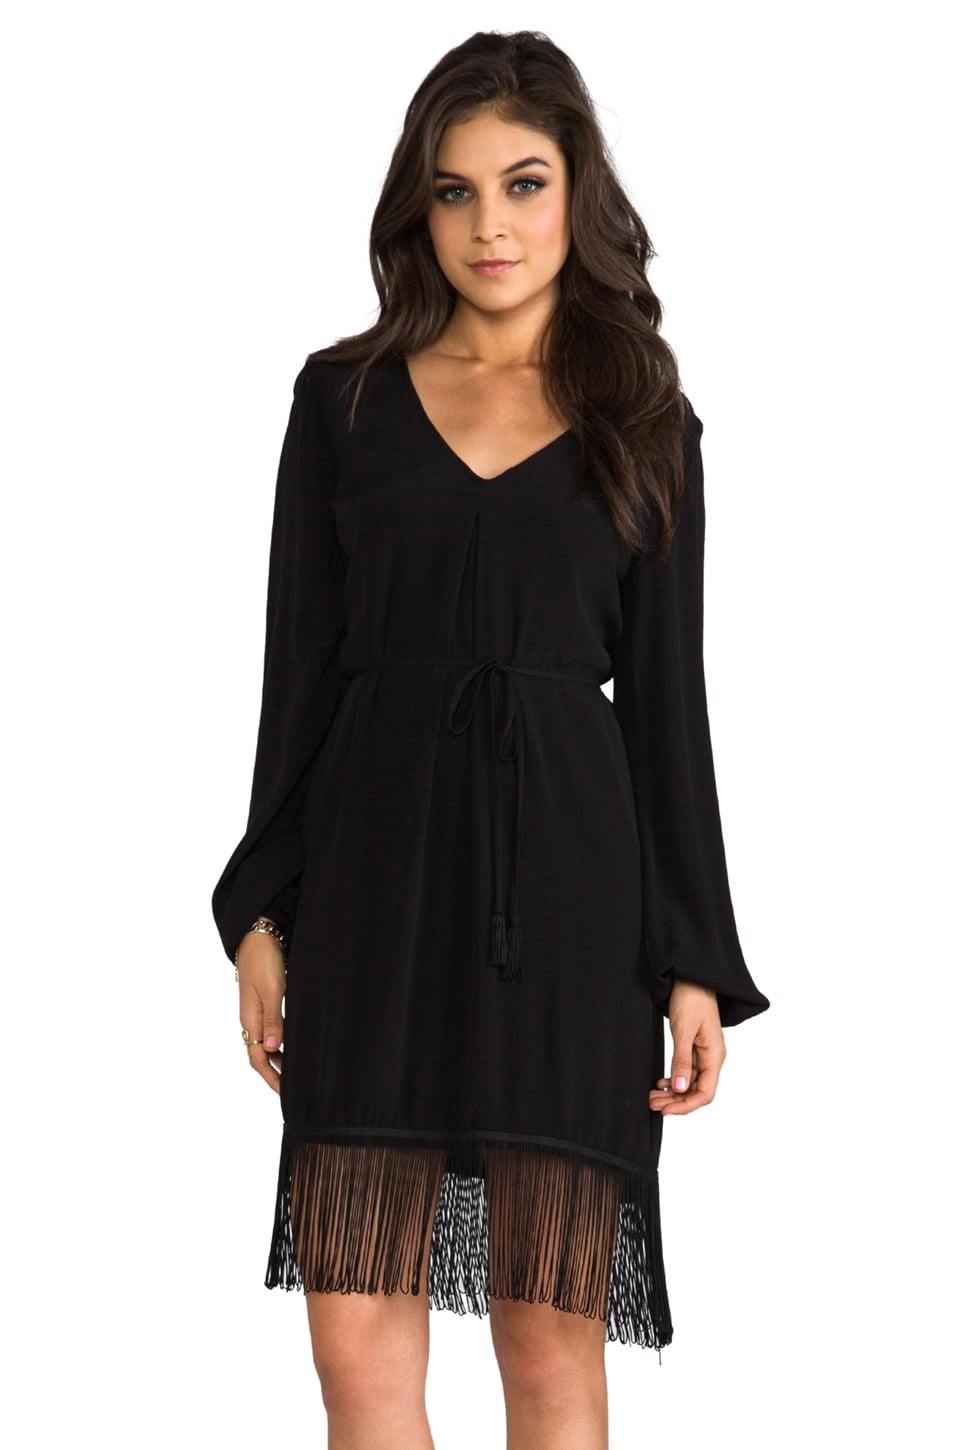 SAM&LAVI Aria Tassel Dress in Black